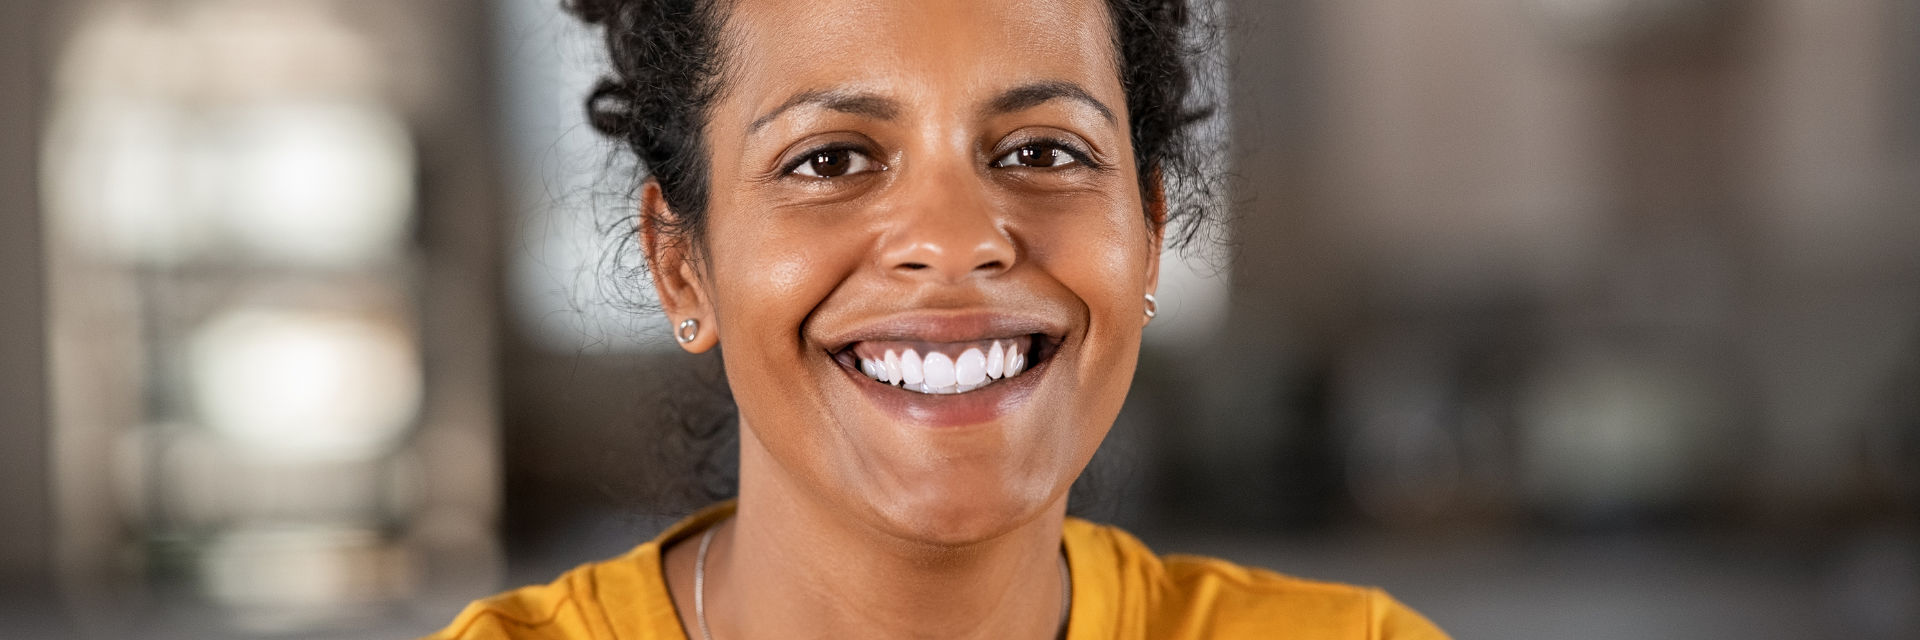 A happy middle-aged woman showing beautiful white teeth in her smile.